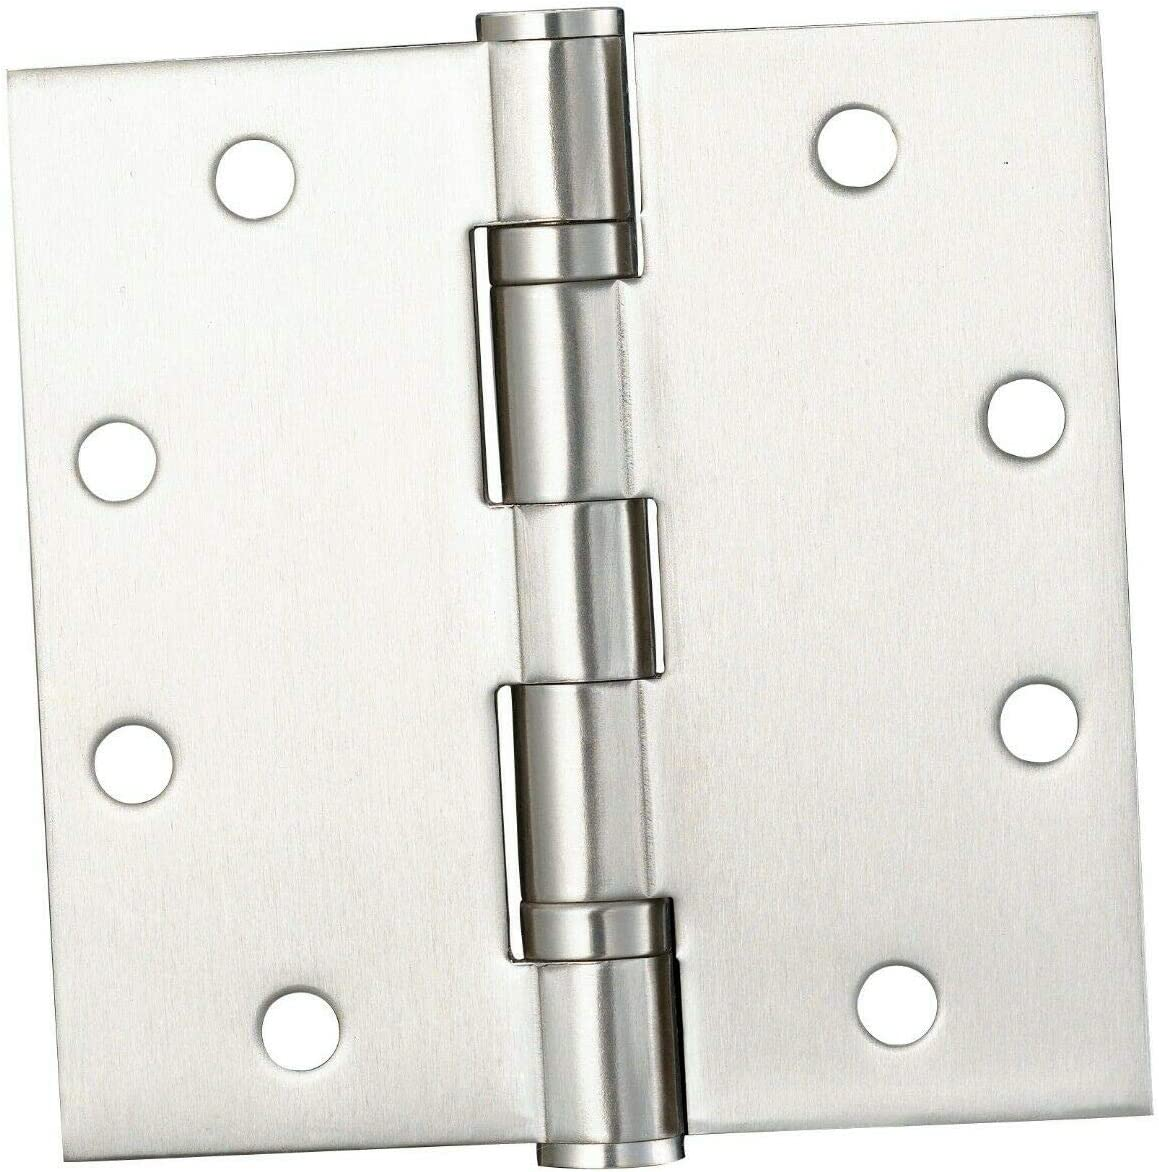 Heavy Duty Door Hinges Stainless Steel 15, 4x4 x2.5mm Round Corner by Dependable Direct- 4x4 x2.5mm -Pack of 2 or 3 4 Bearing Heavy Weight Commercial Door Hinge